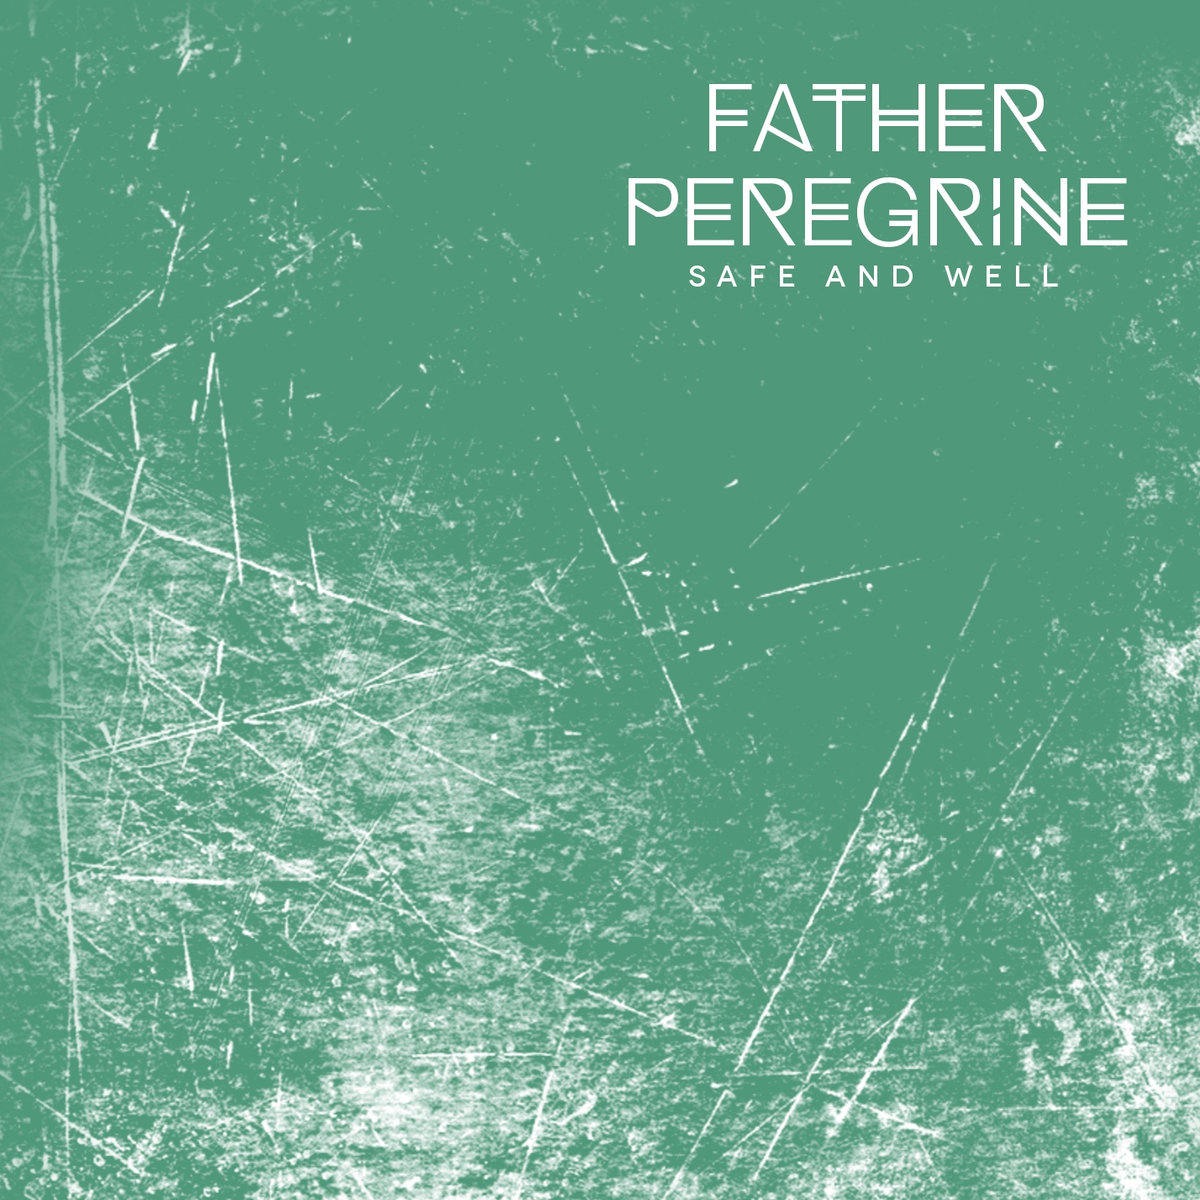 Father Peregrine: Safe and Well